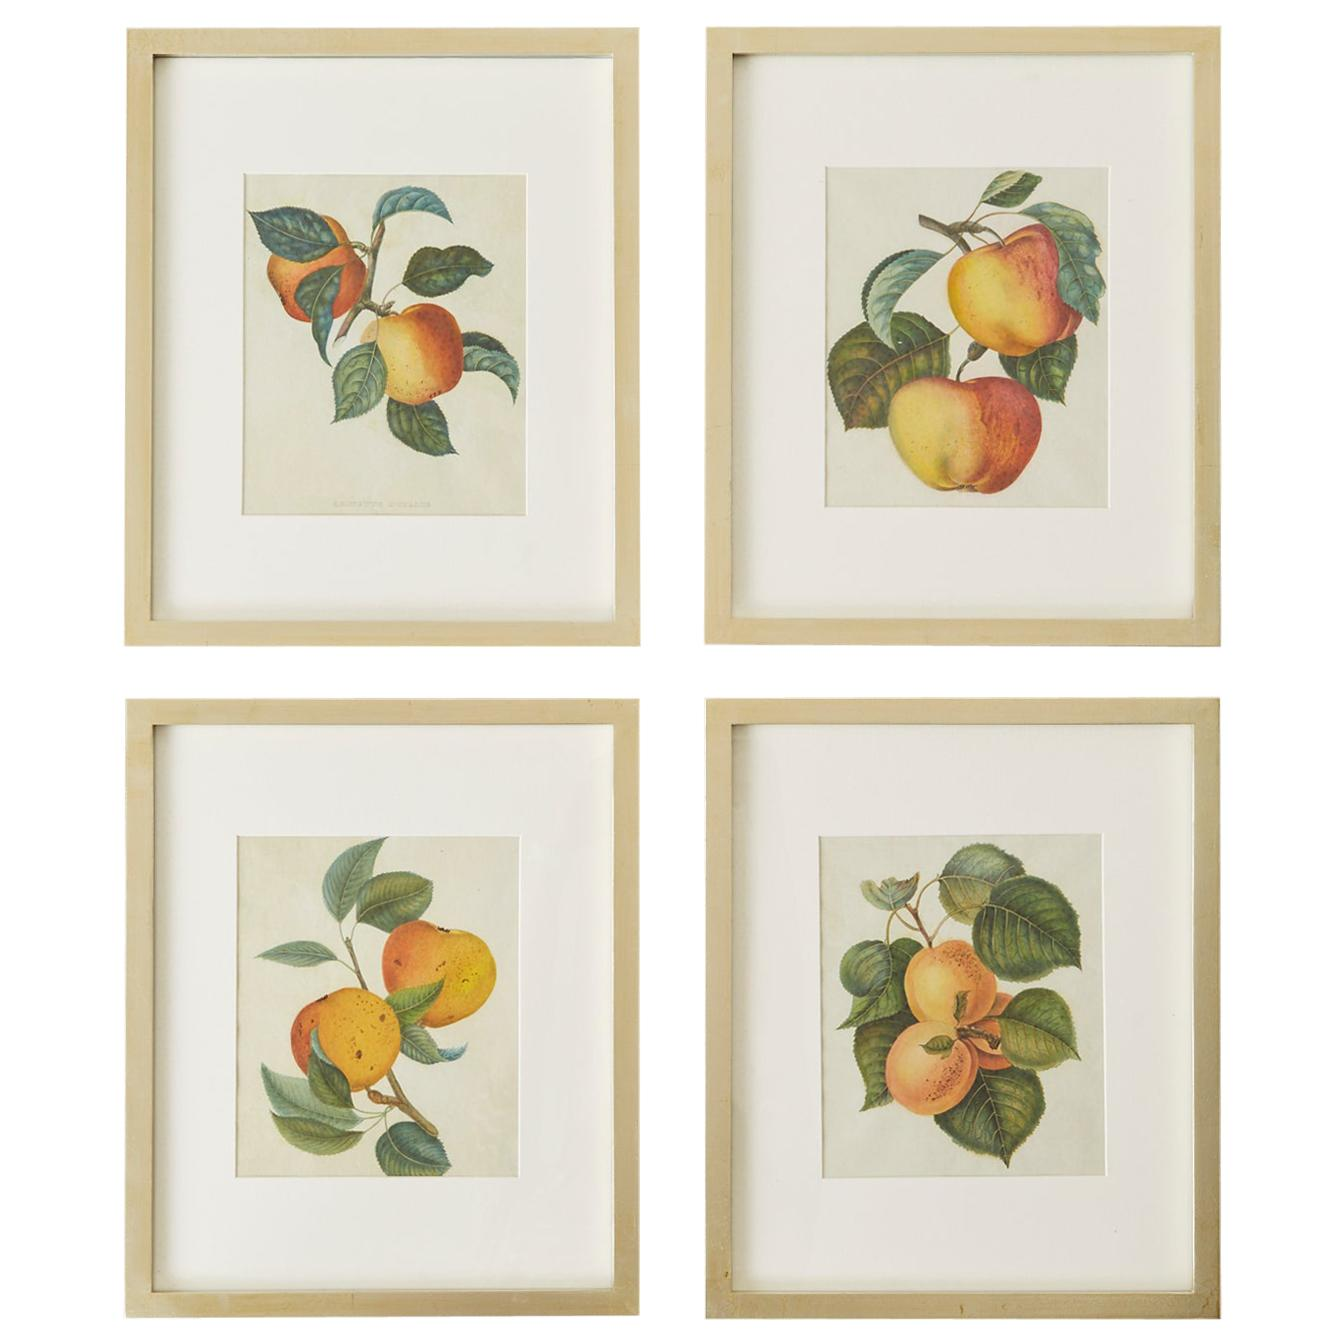 Set of Four 19th Century Hand-Colored Botanical Fruit Prints